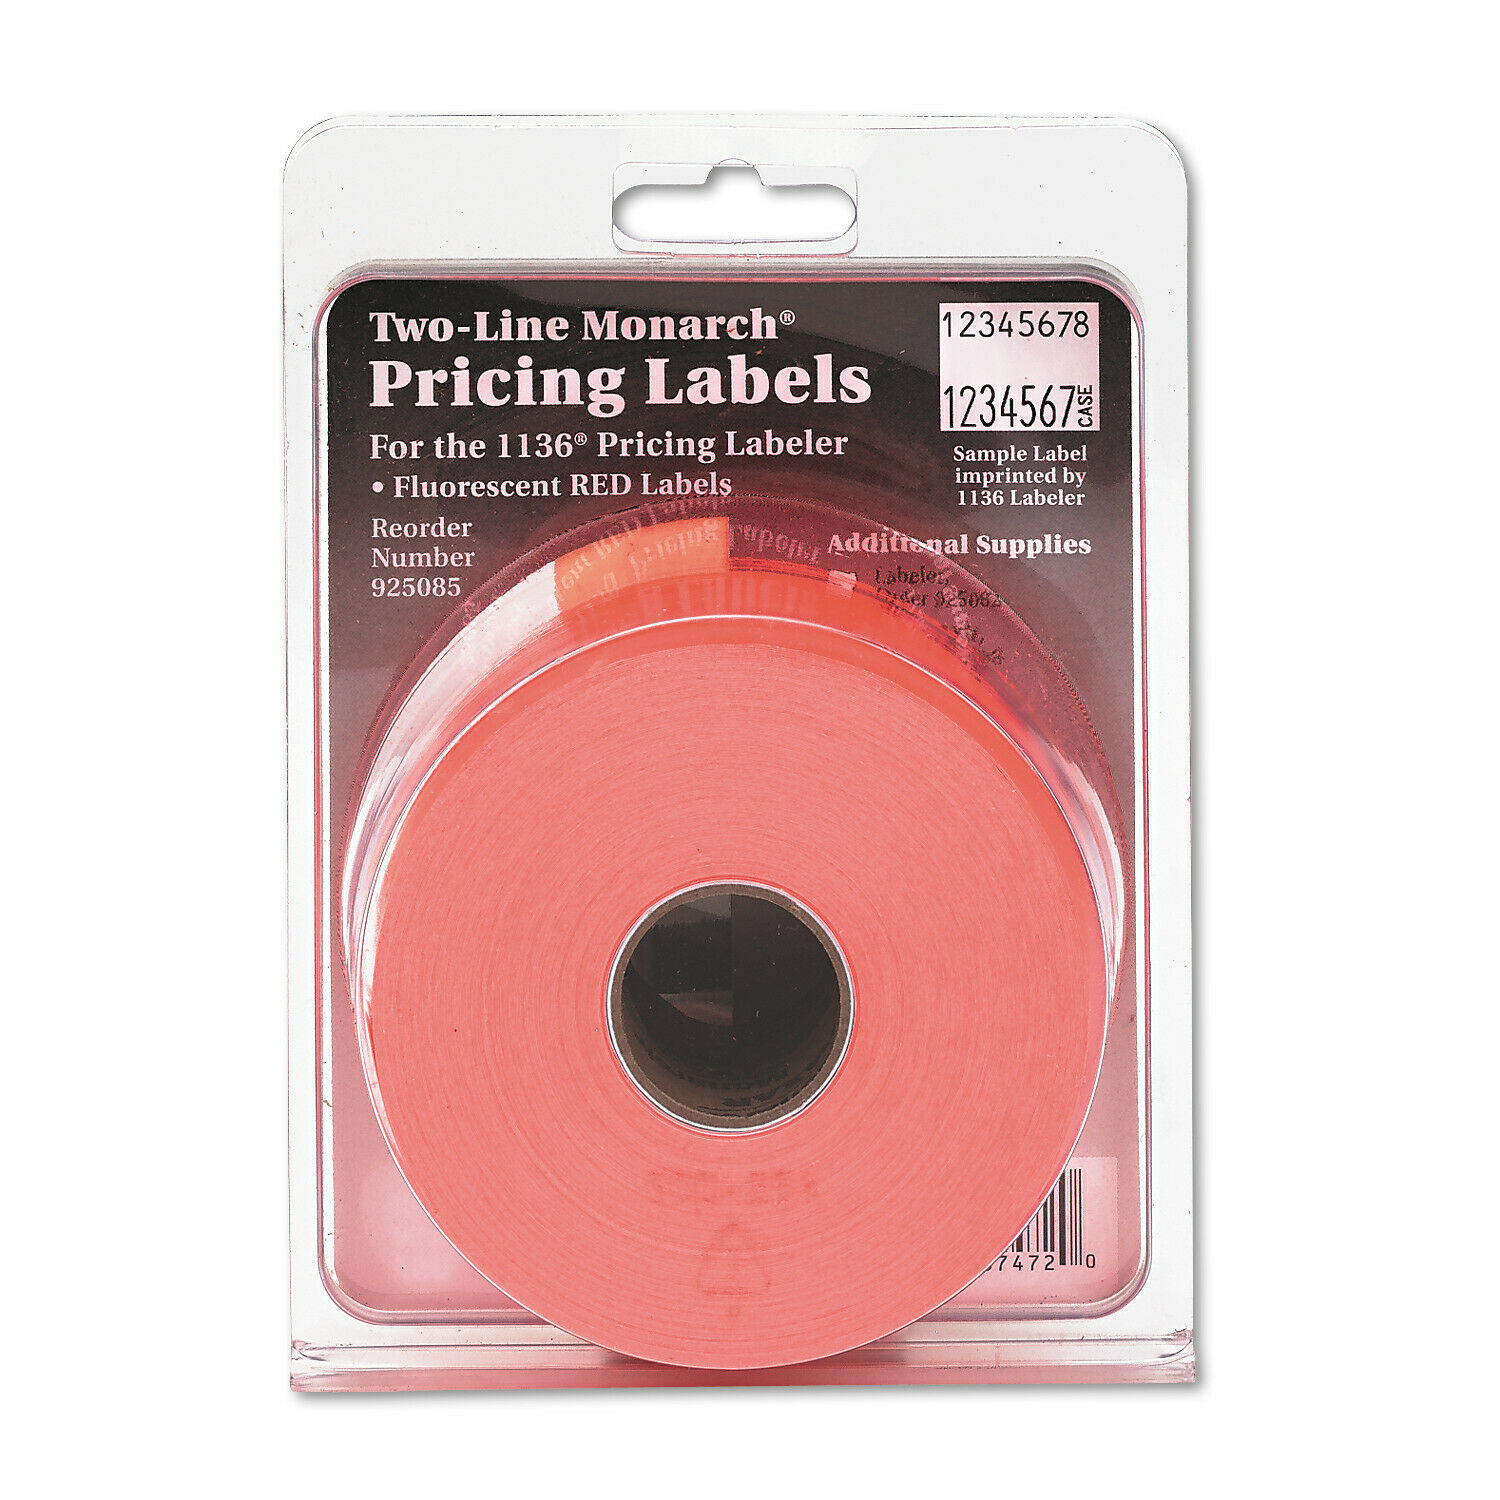 MNK925084 Monarch Marking Easy-Load 1136 Two-Line Pricemarker Labels